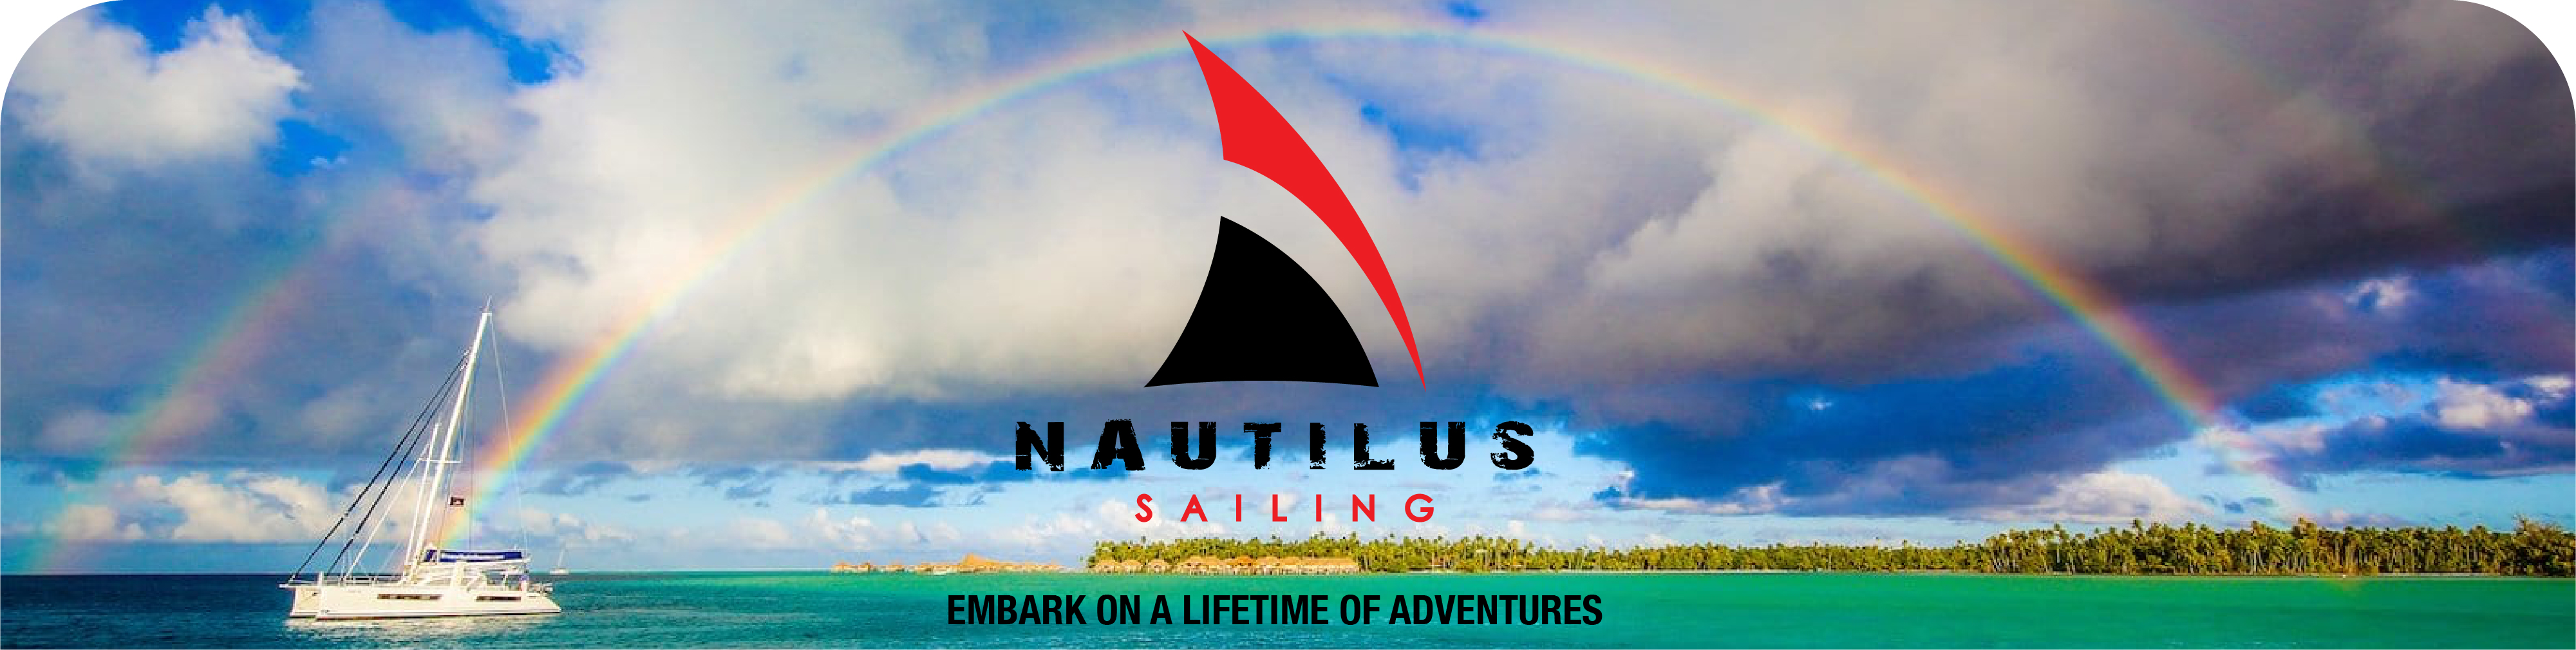 nautilus-sailing-online-store-banners-02.jpg